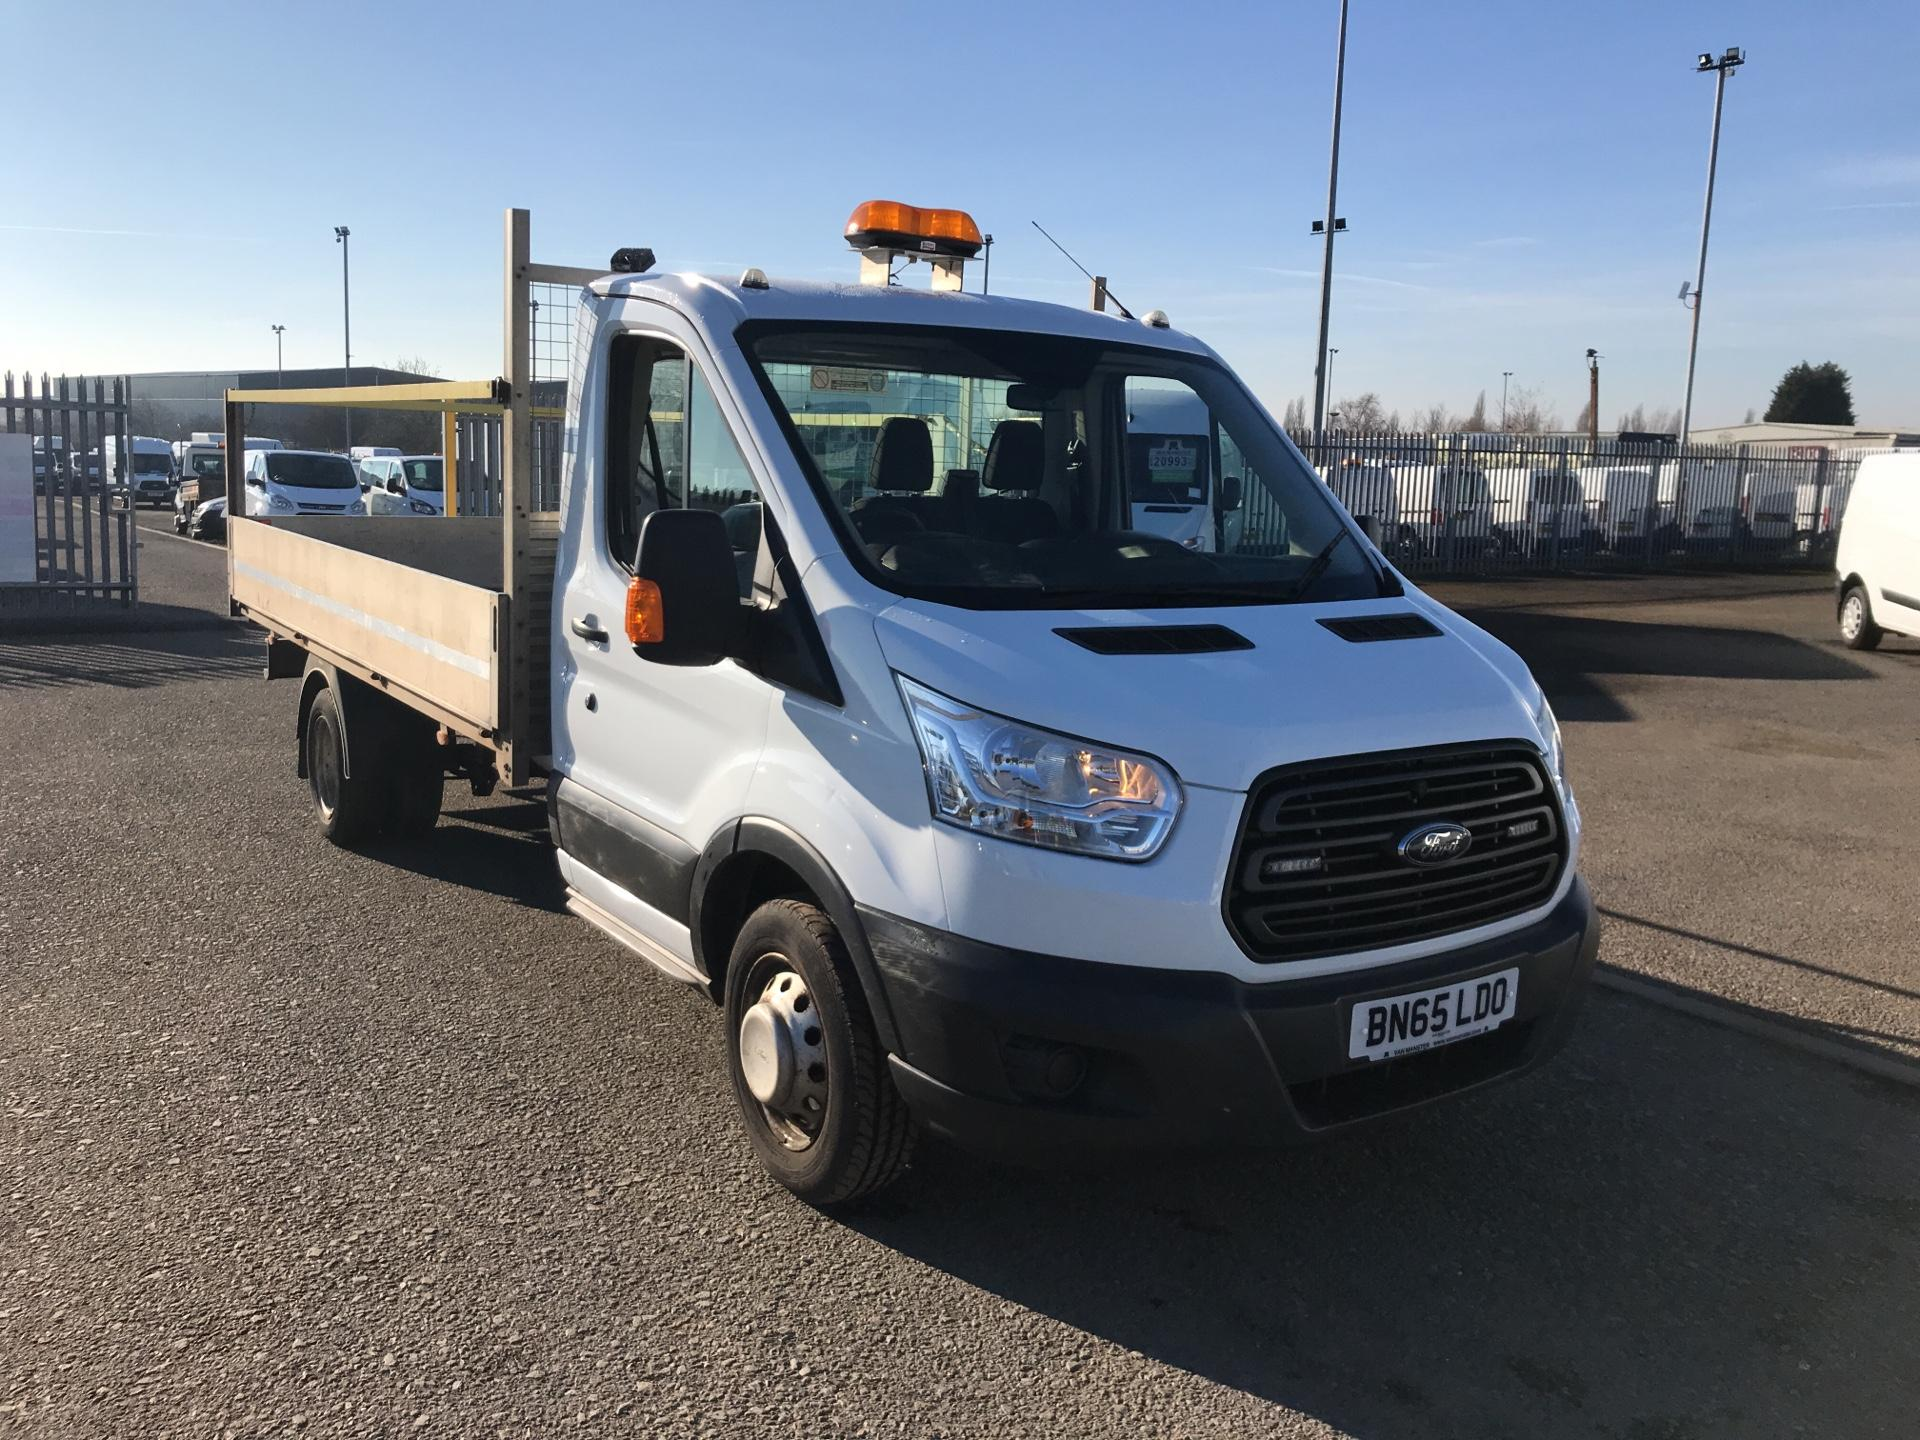 2015 Ford Transit 350 L4 DROP SIDE 125PS EURO 5 (BN65LDO)